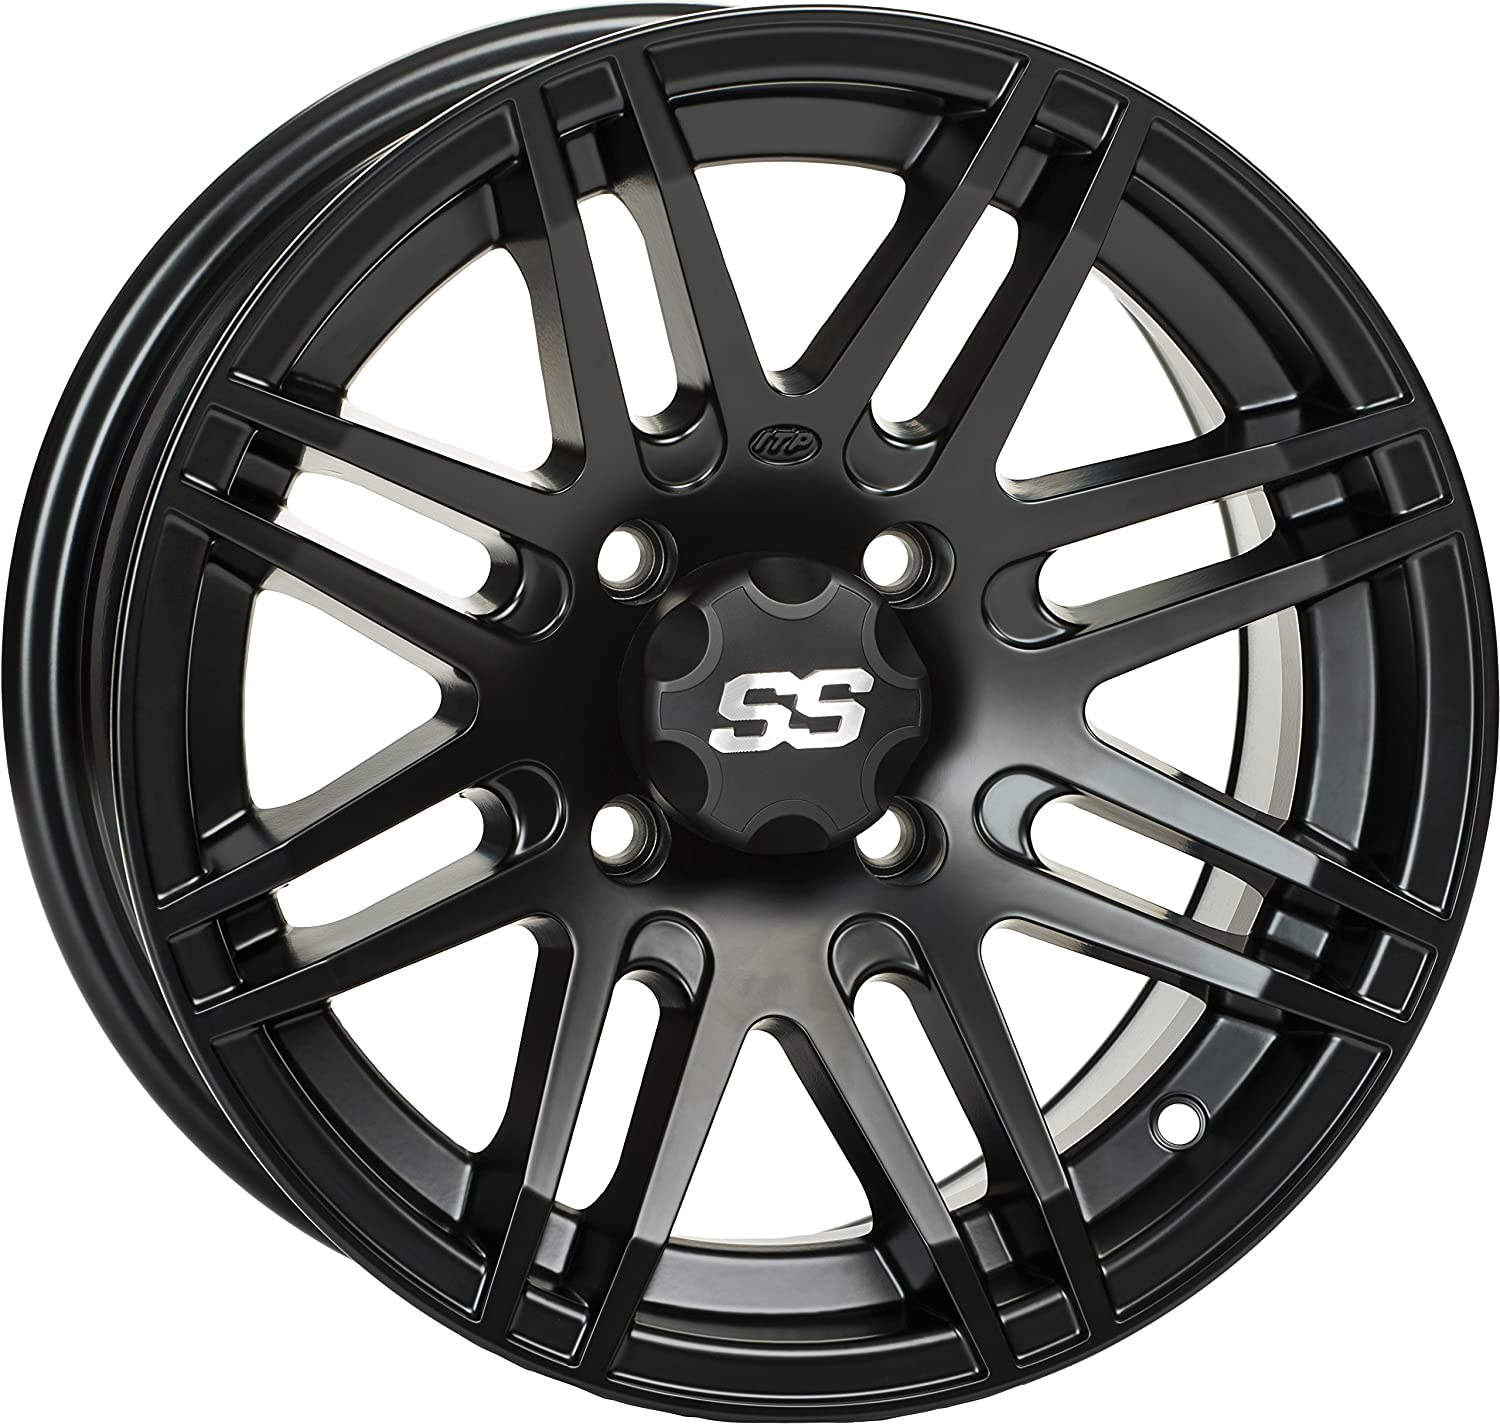 ITP 1428562536B SS ALLOY SS316 Matte Black Wheel with Machined Finish (14x7'/4x156mm)